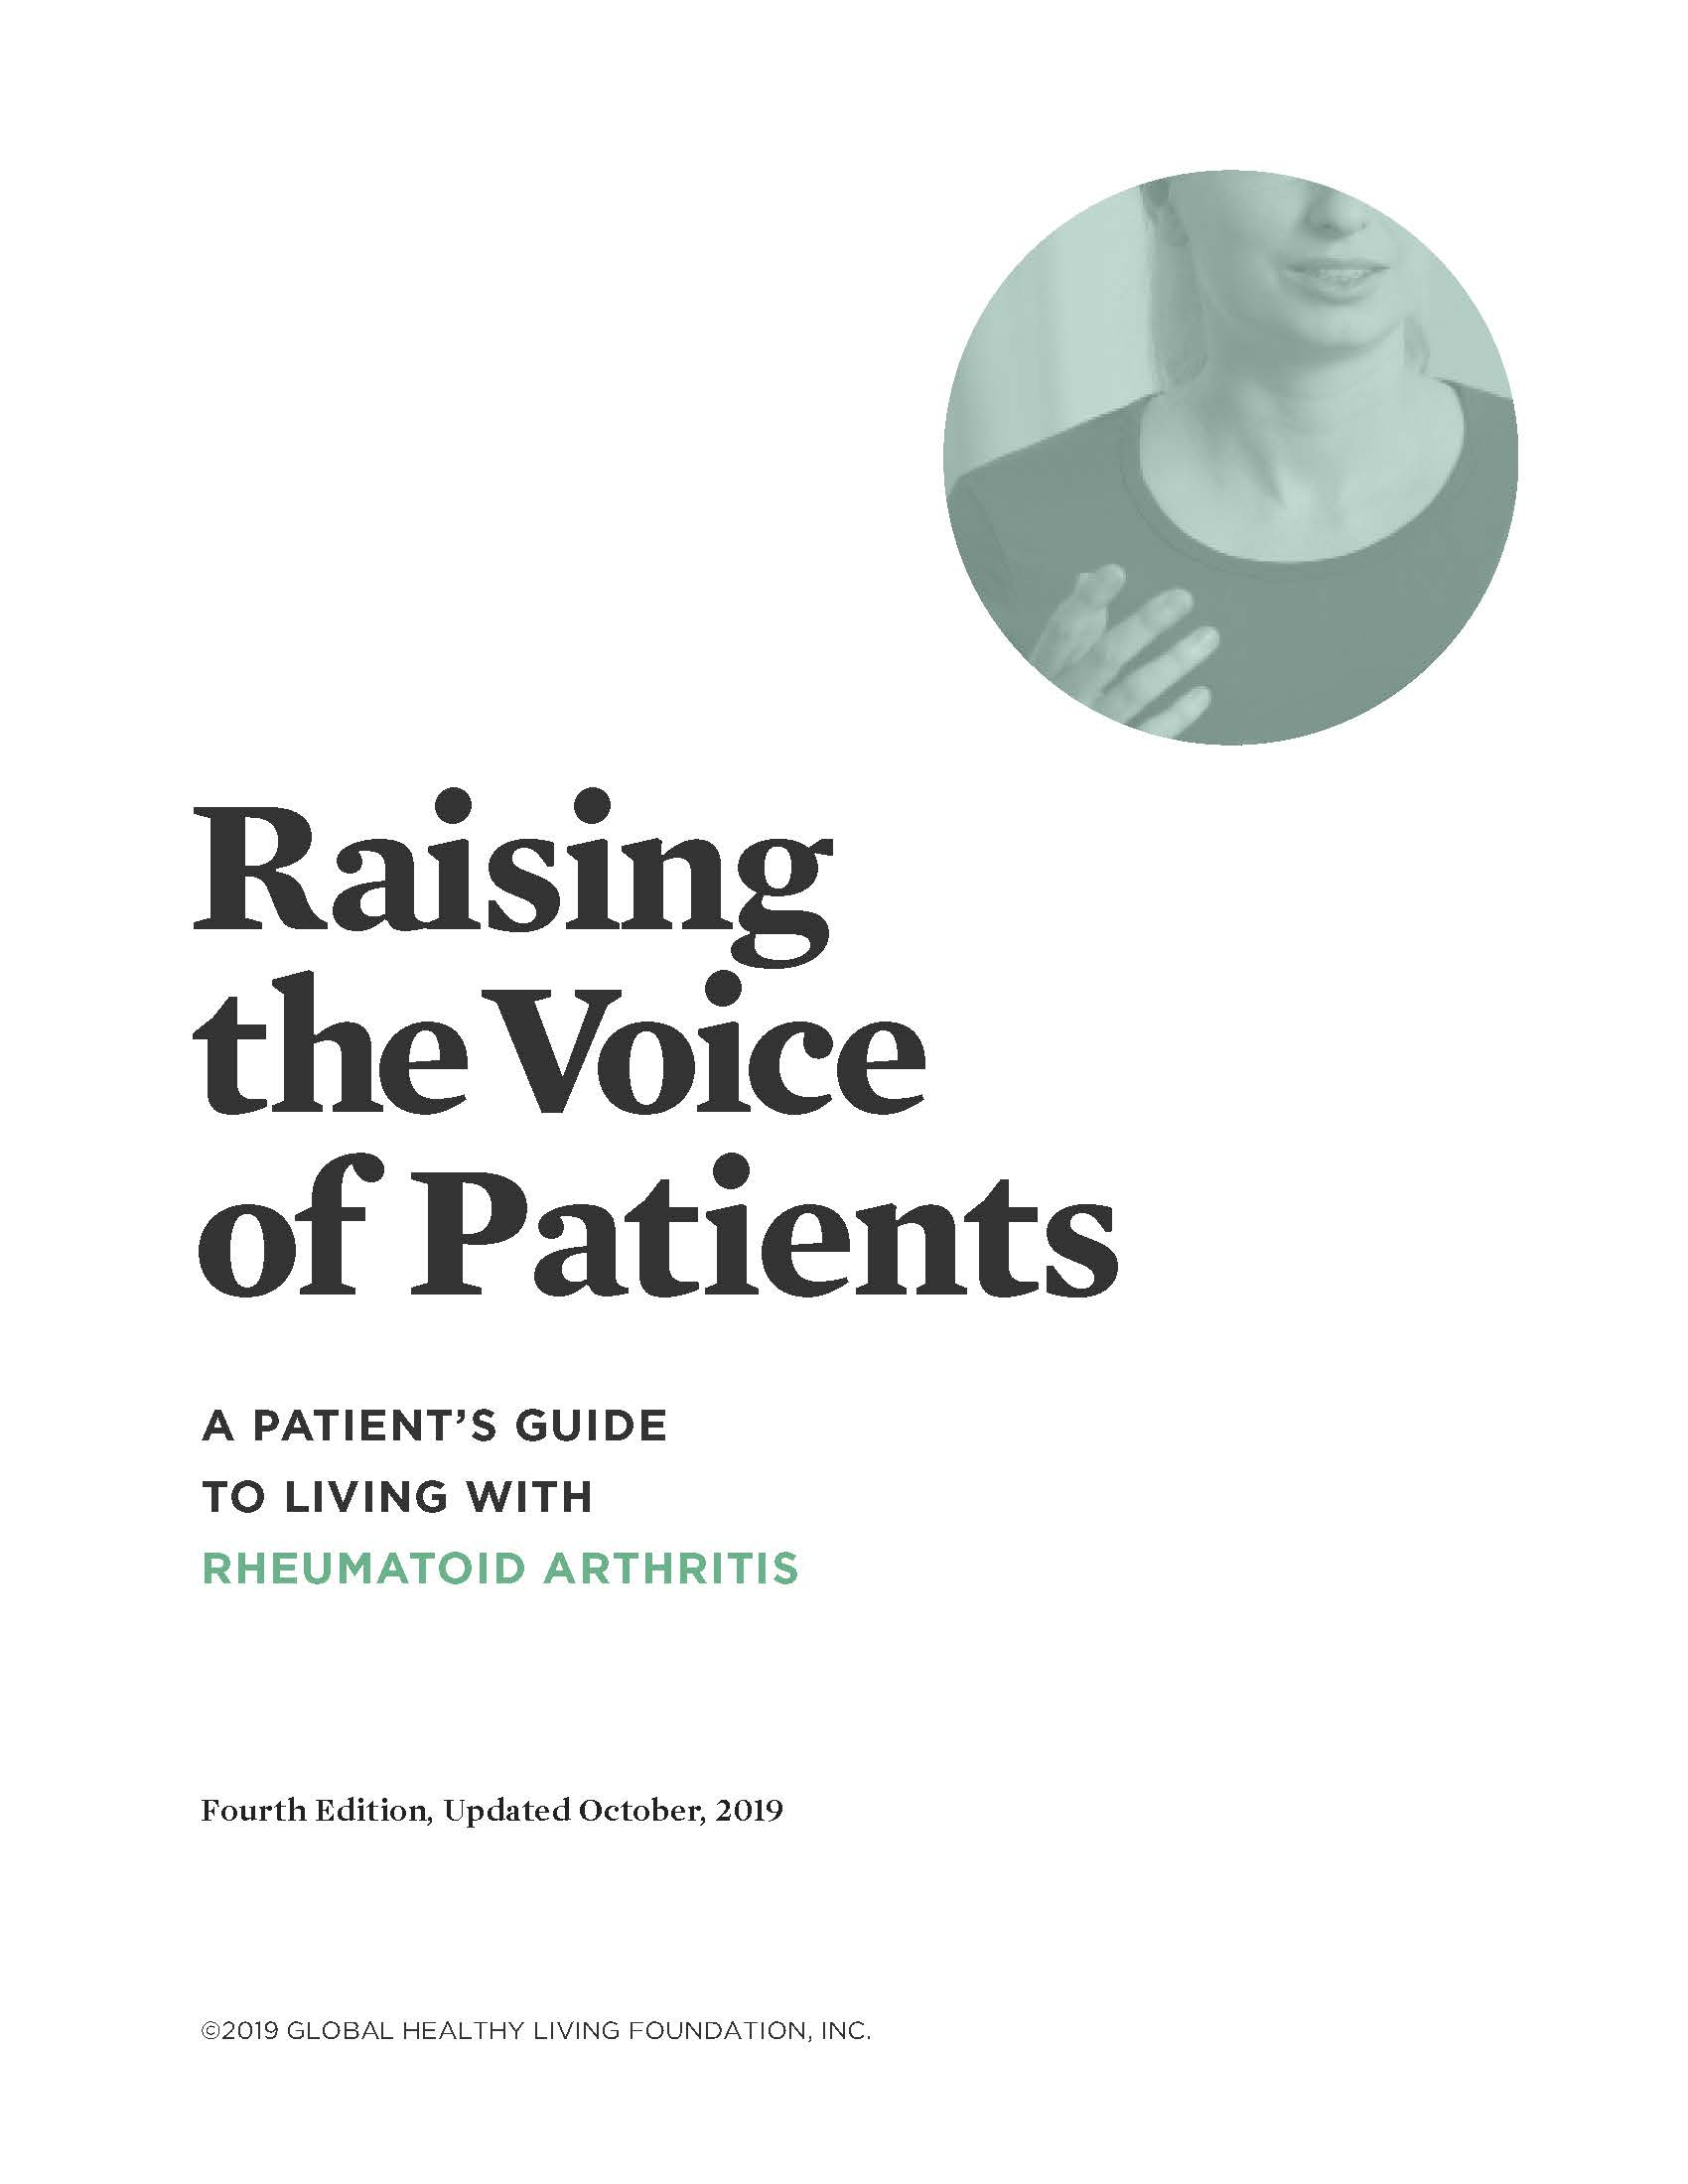 Raising the Voice of Patients